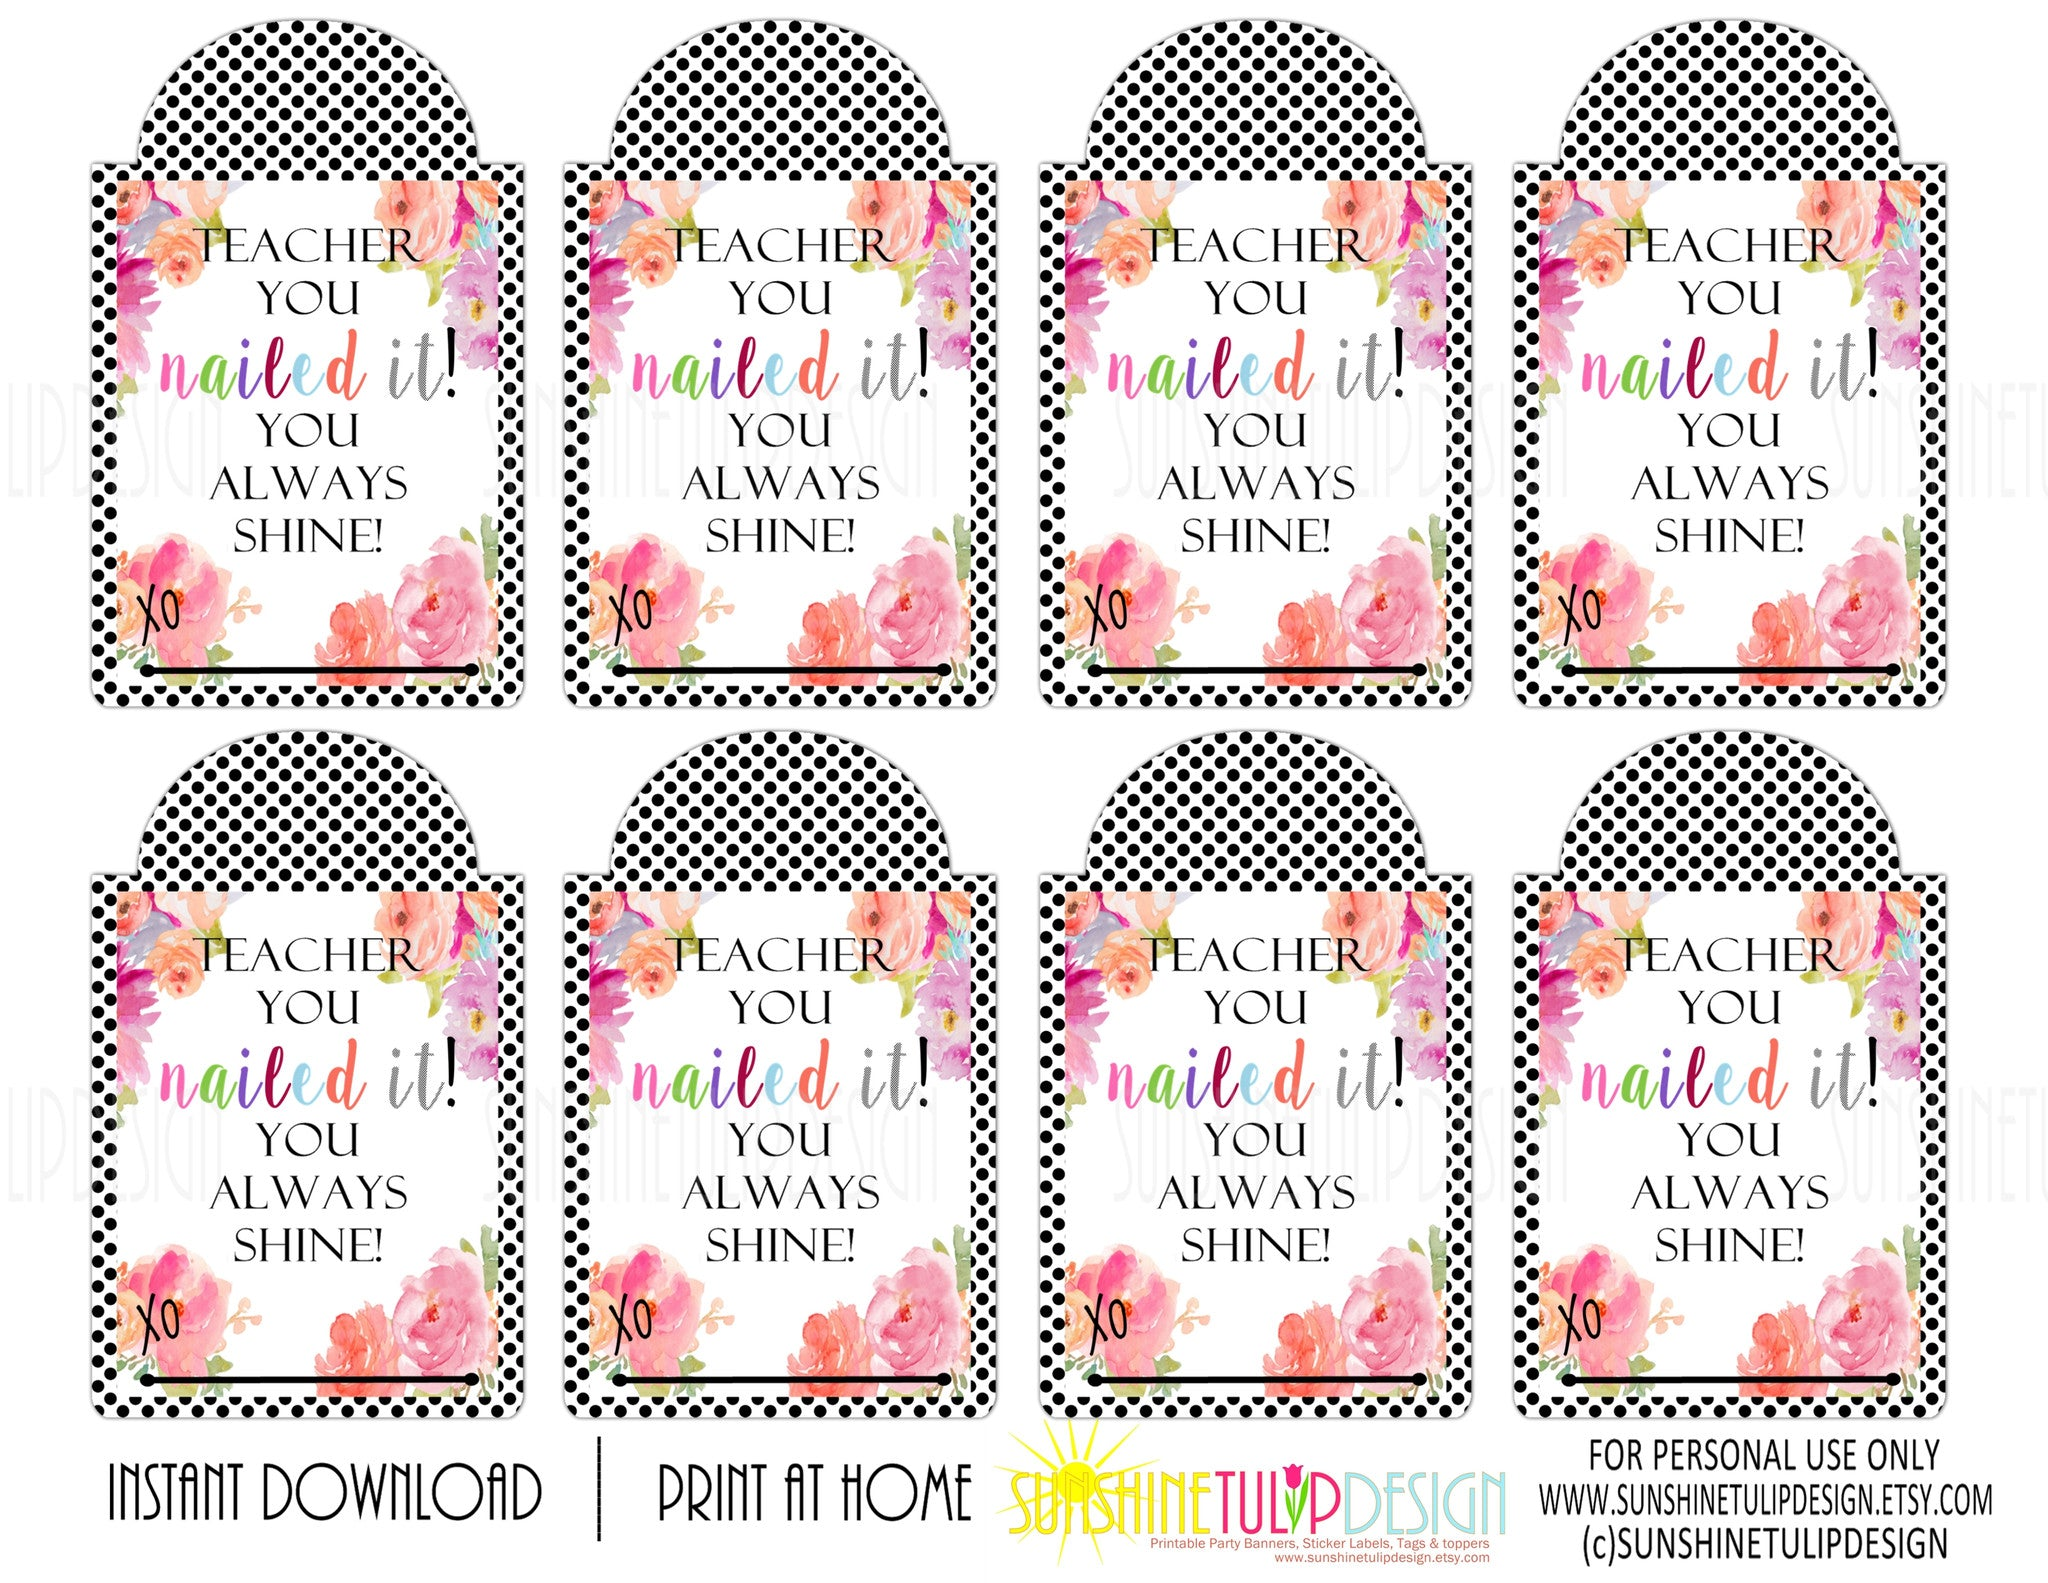 photograph about Free Printable Teacher Appreciation Tags referred to as Printable Trainer Appreciation tags, Trainer On your own Nailed it, On your own constantly Glow Reward Tags via SUNSHINETULIPDESIGN